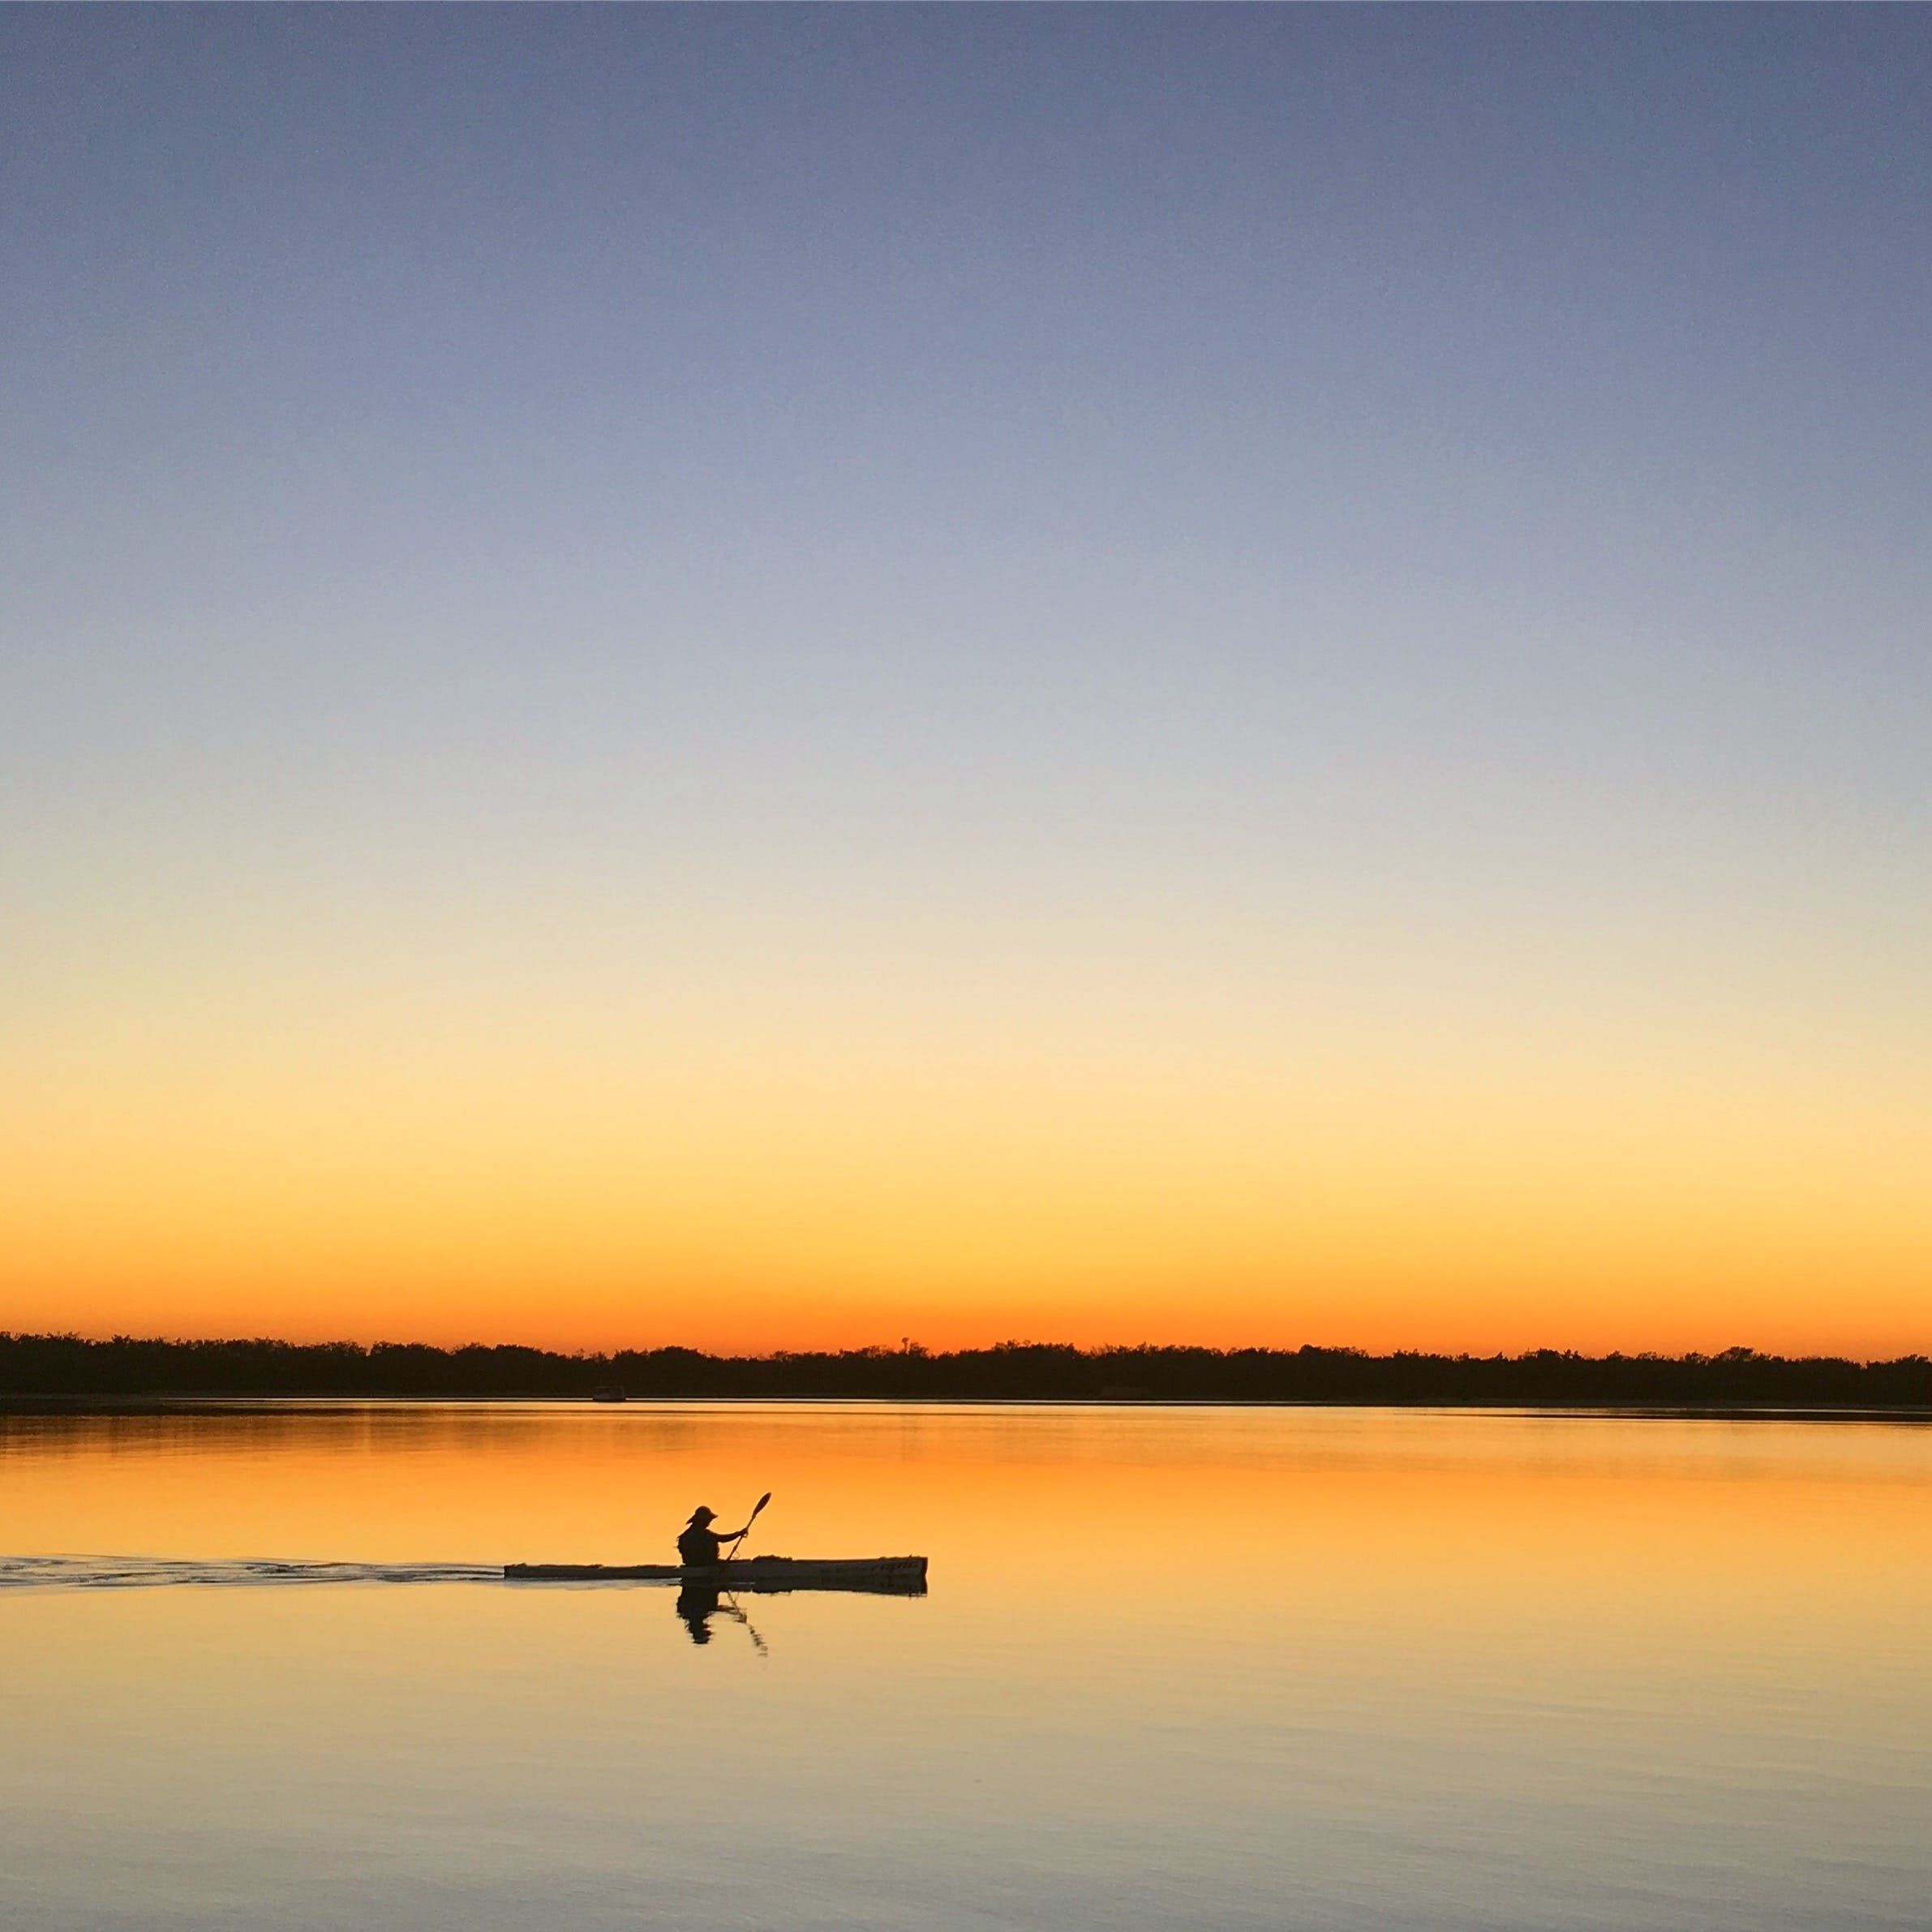 Silhouette of Man Inside of Boat Sailing on Body of Water during Sunset